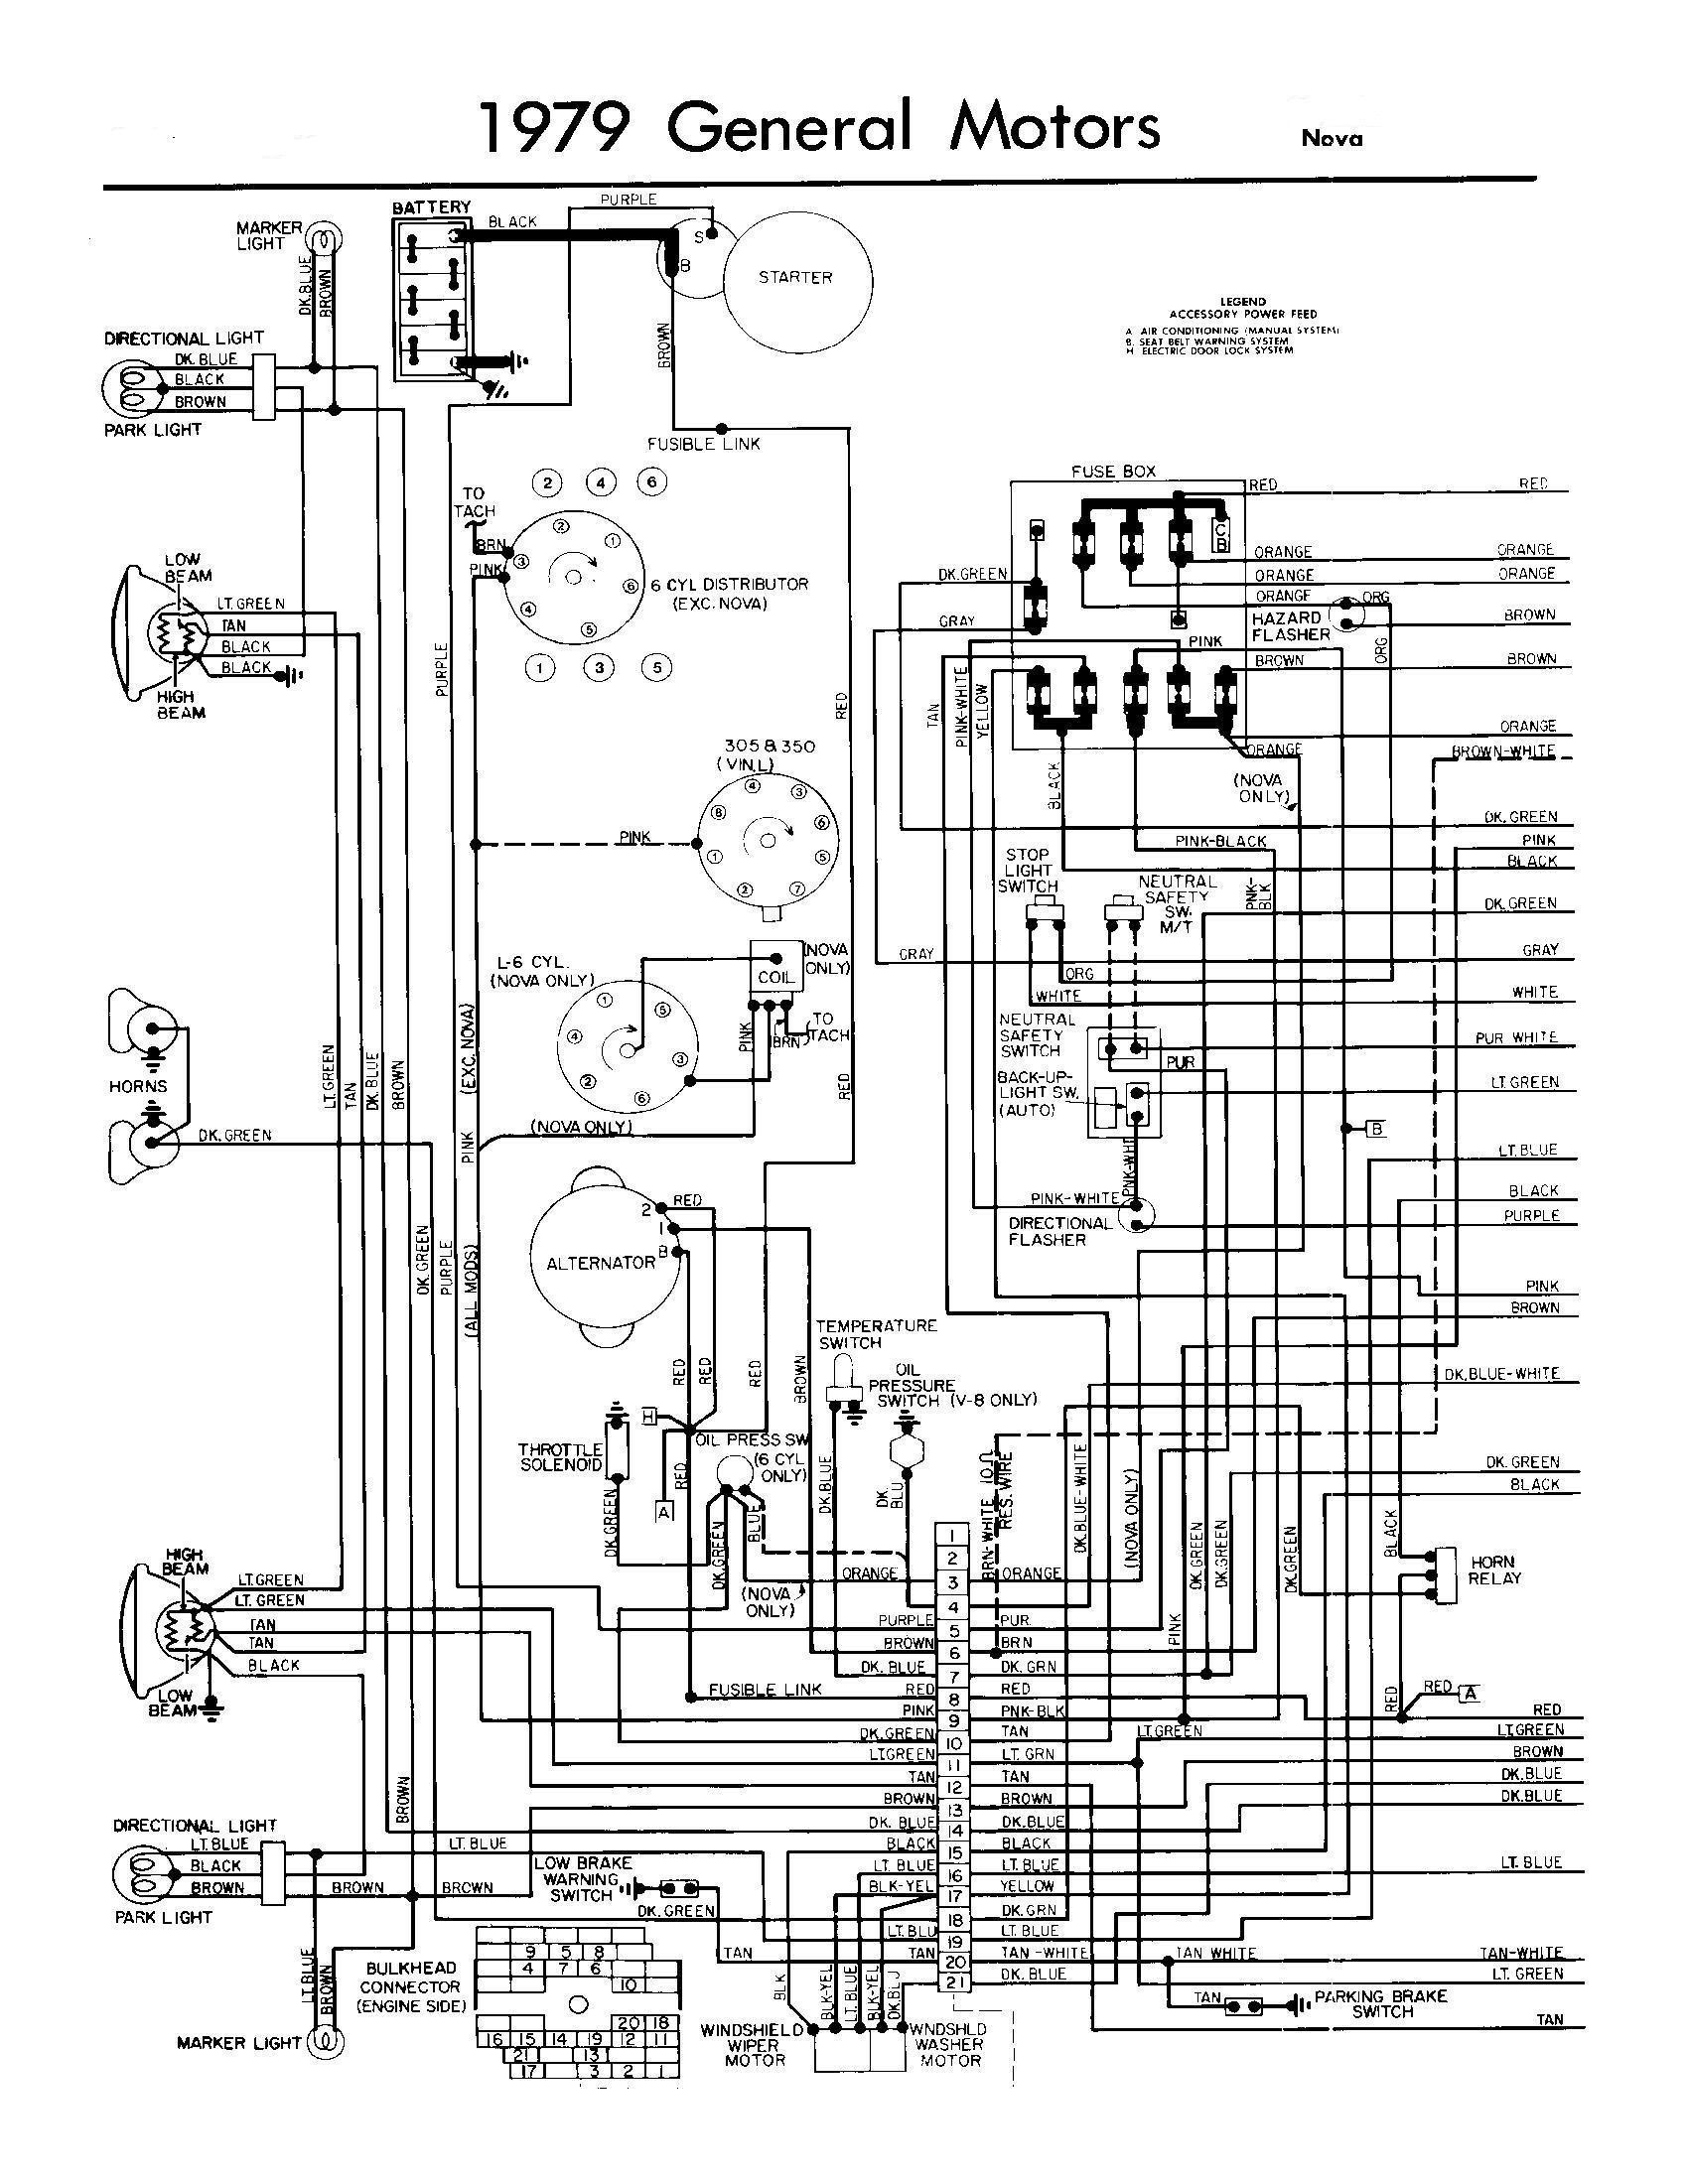 Chevy Alternator Wiring Diagram Chevy Alternator Wiring Diagram 74 Corvette Wiring Diagram Of Chevy Alternator Wiring Diagram